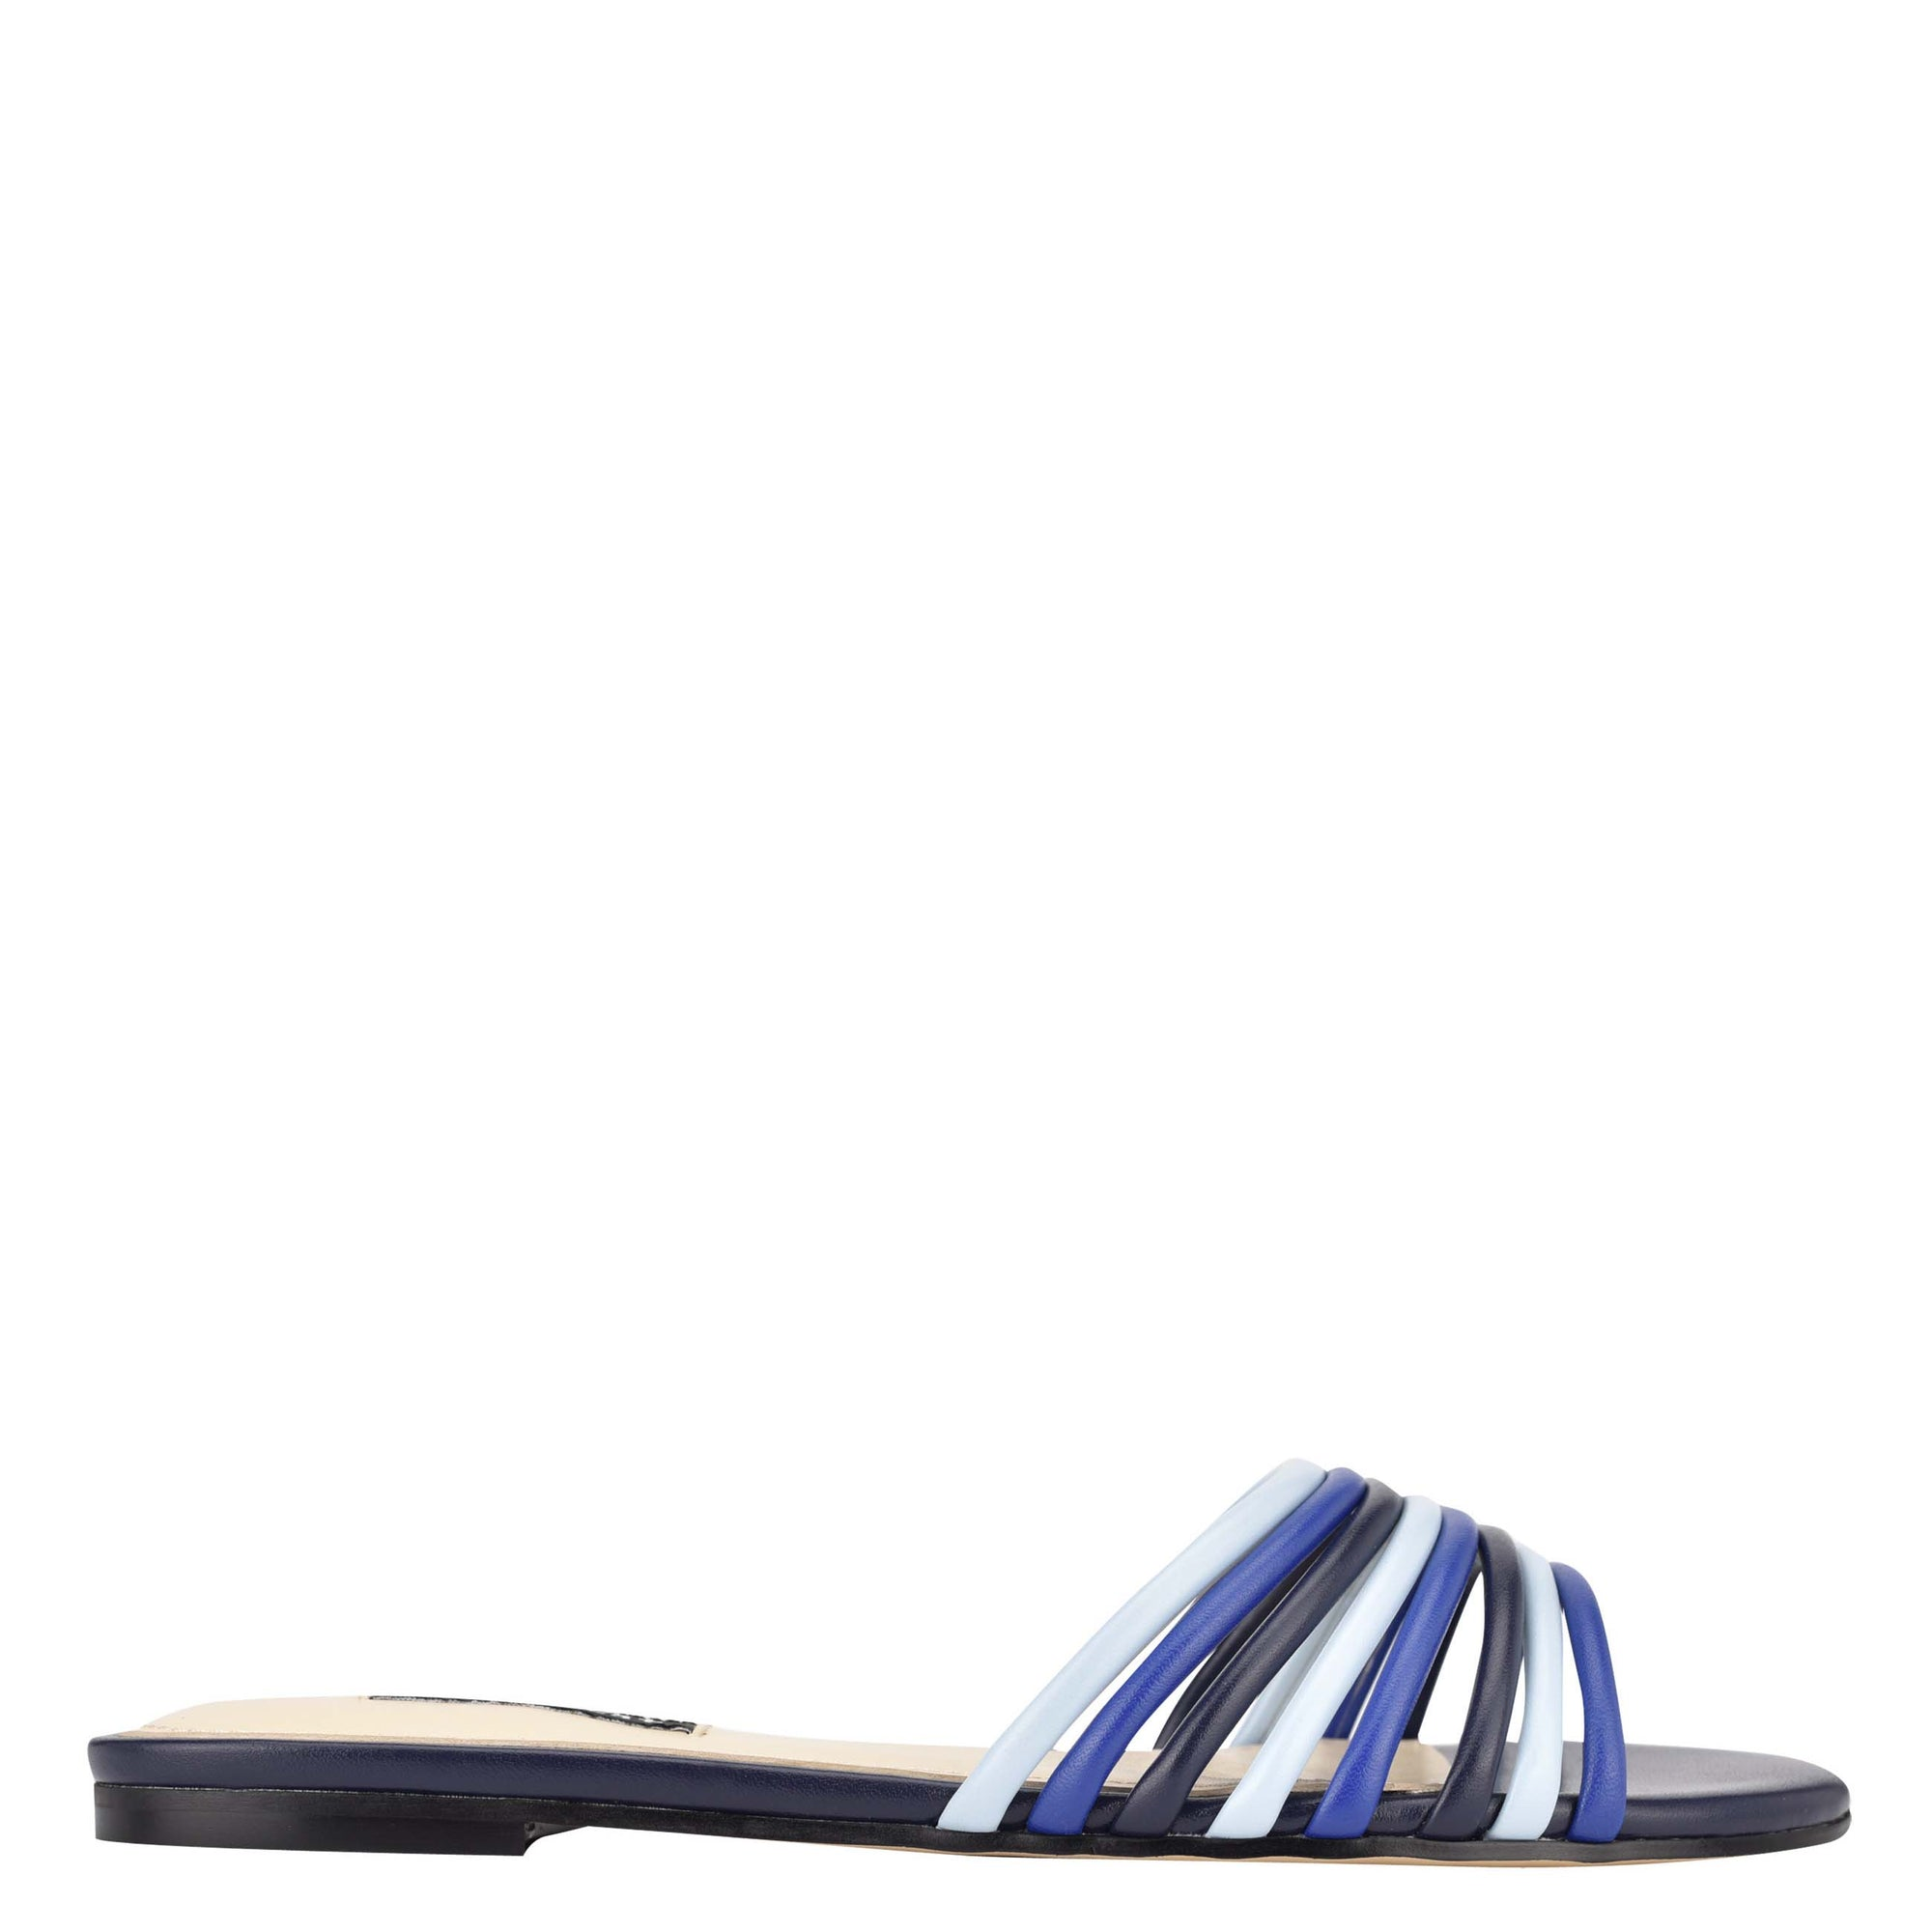 Links Flat Slide Sandals